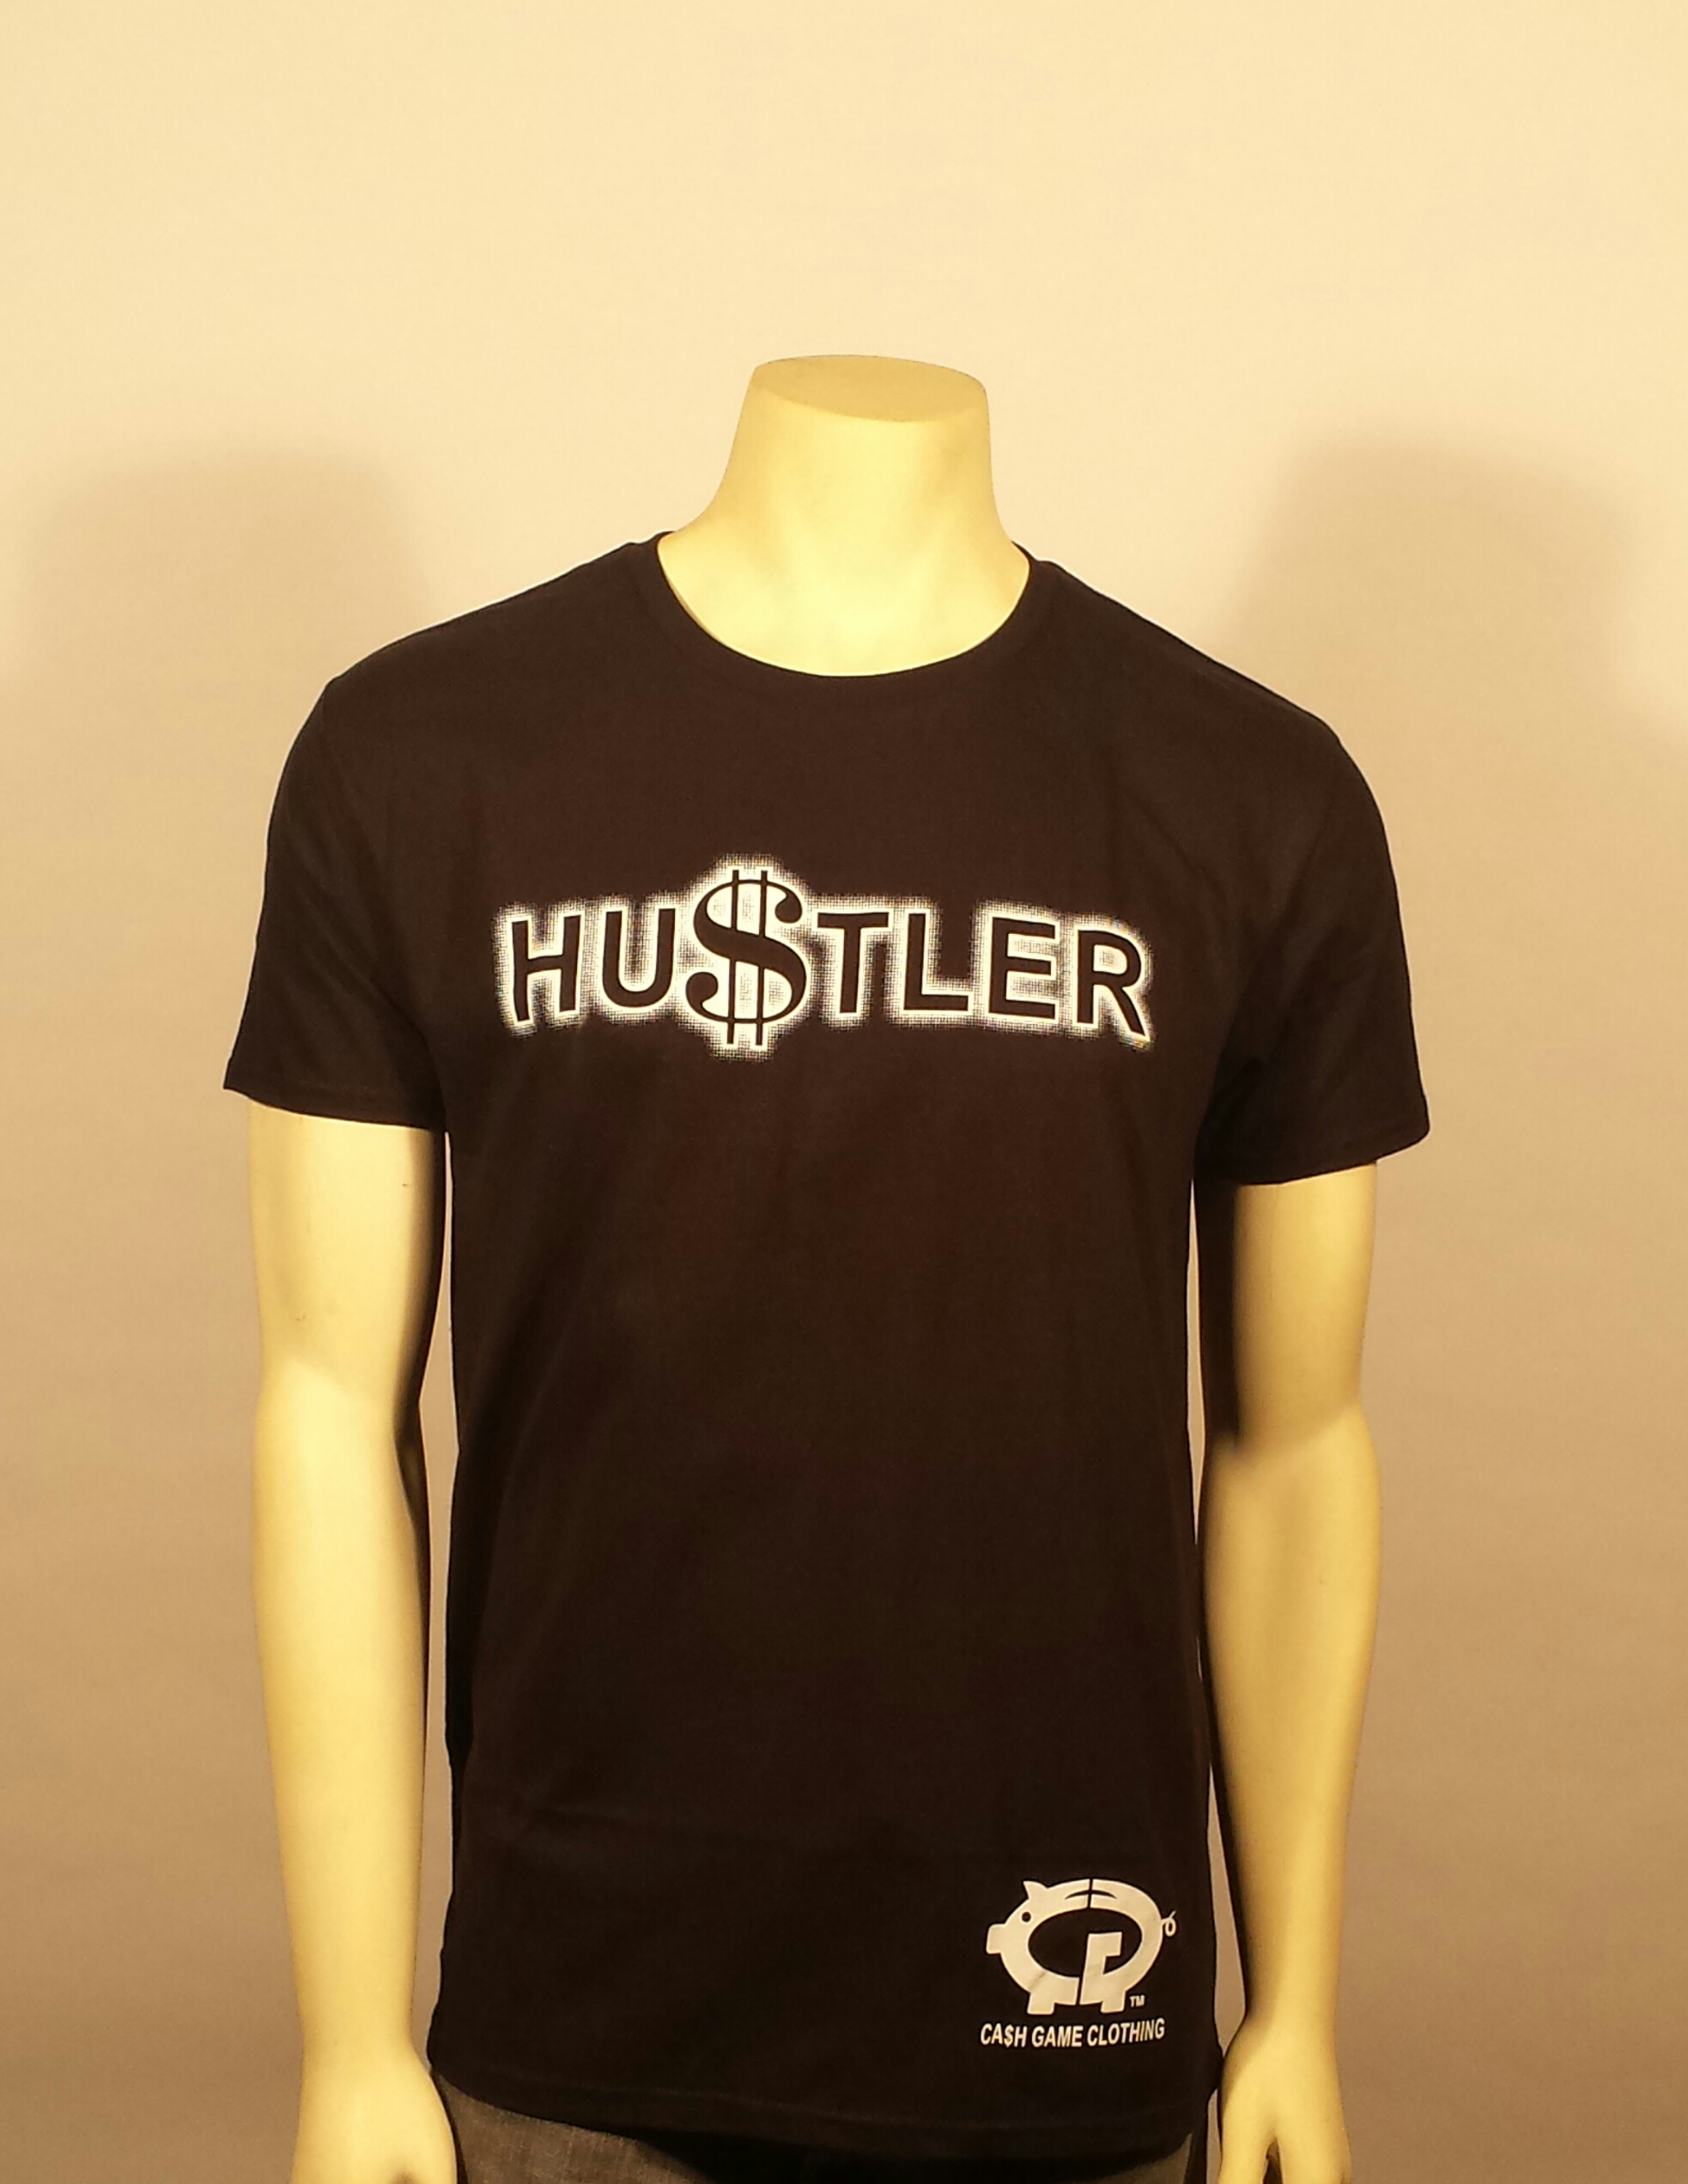 Black hustler shirt